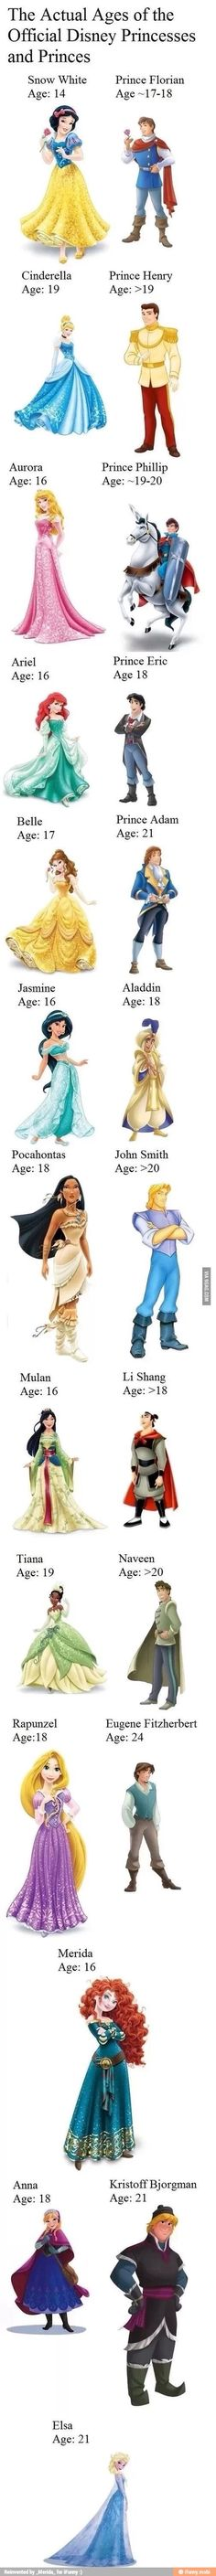 Cool facts about Disney characters.